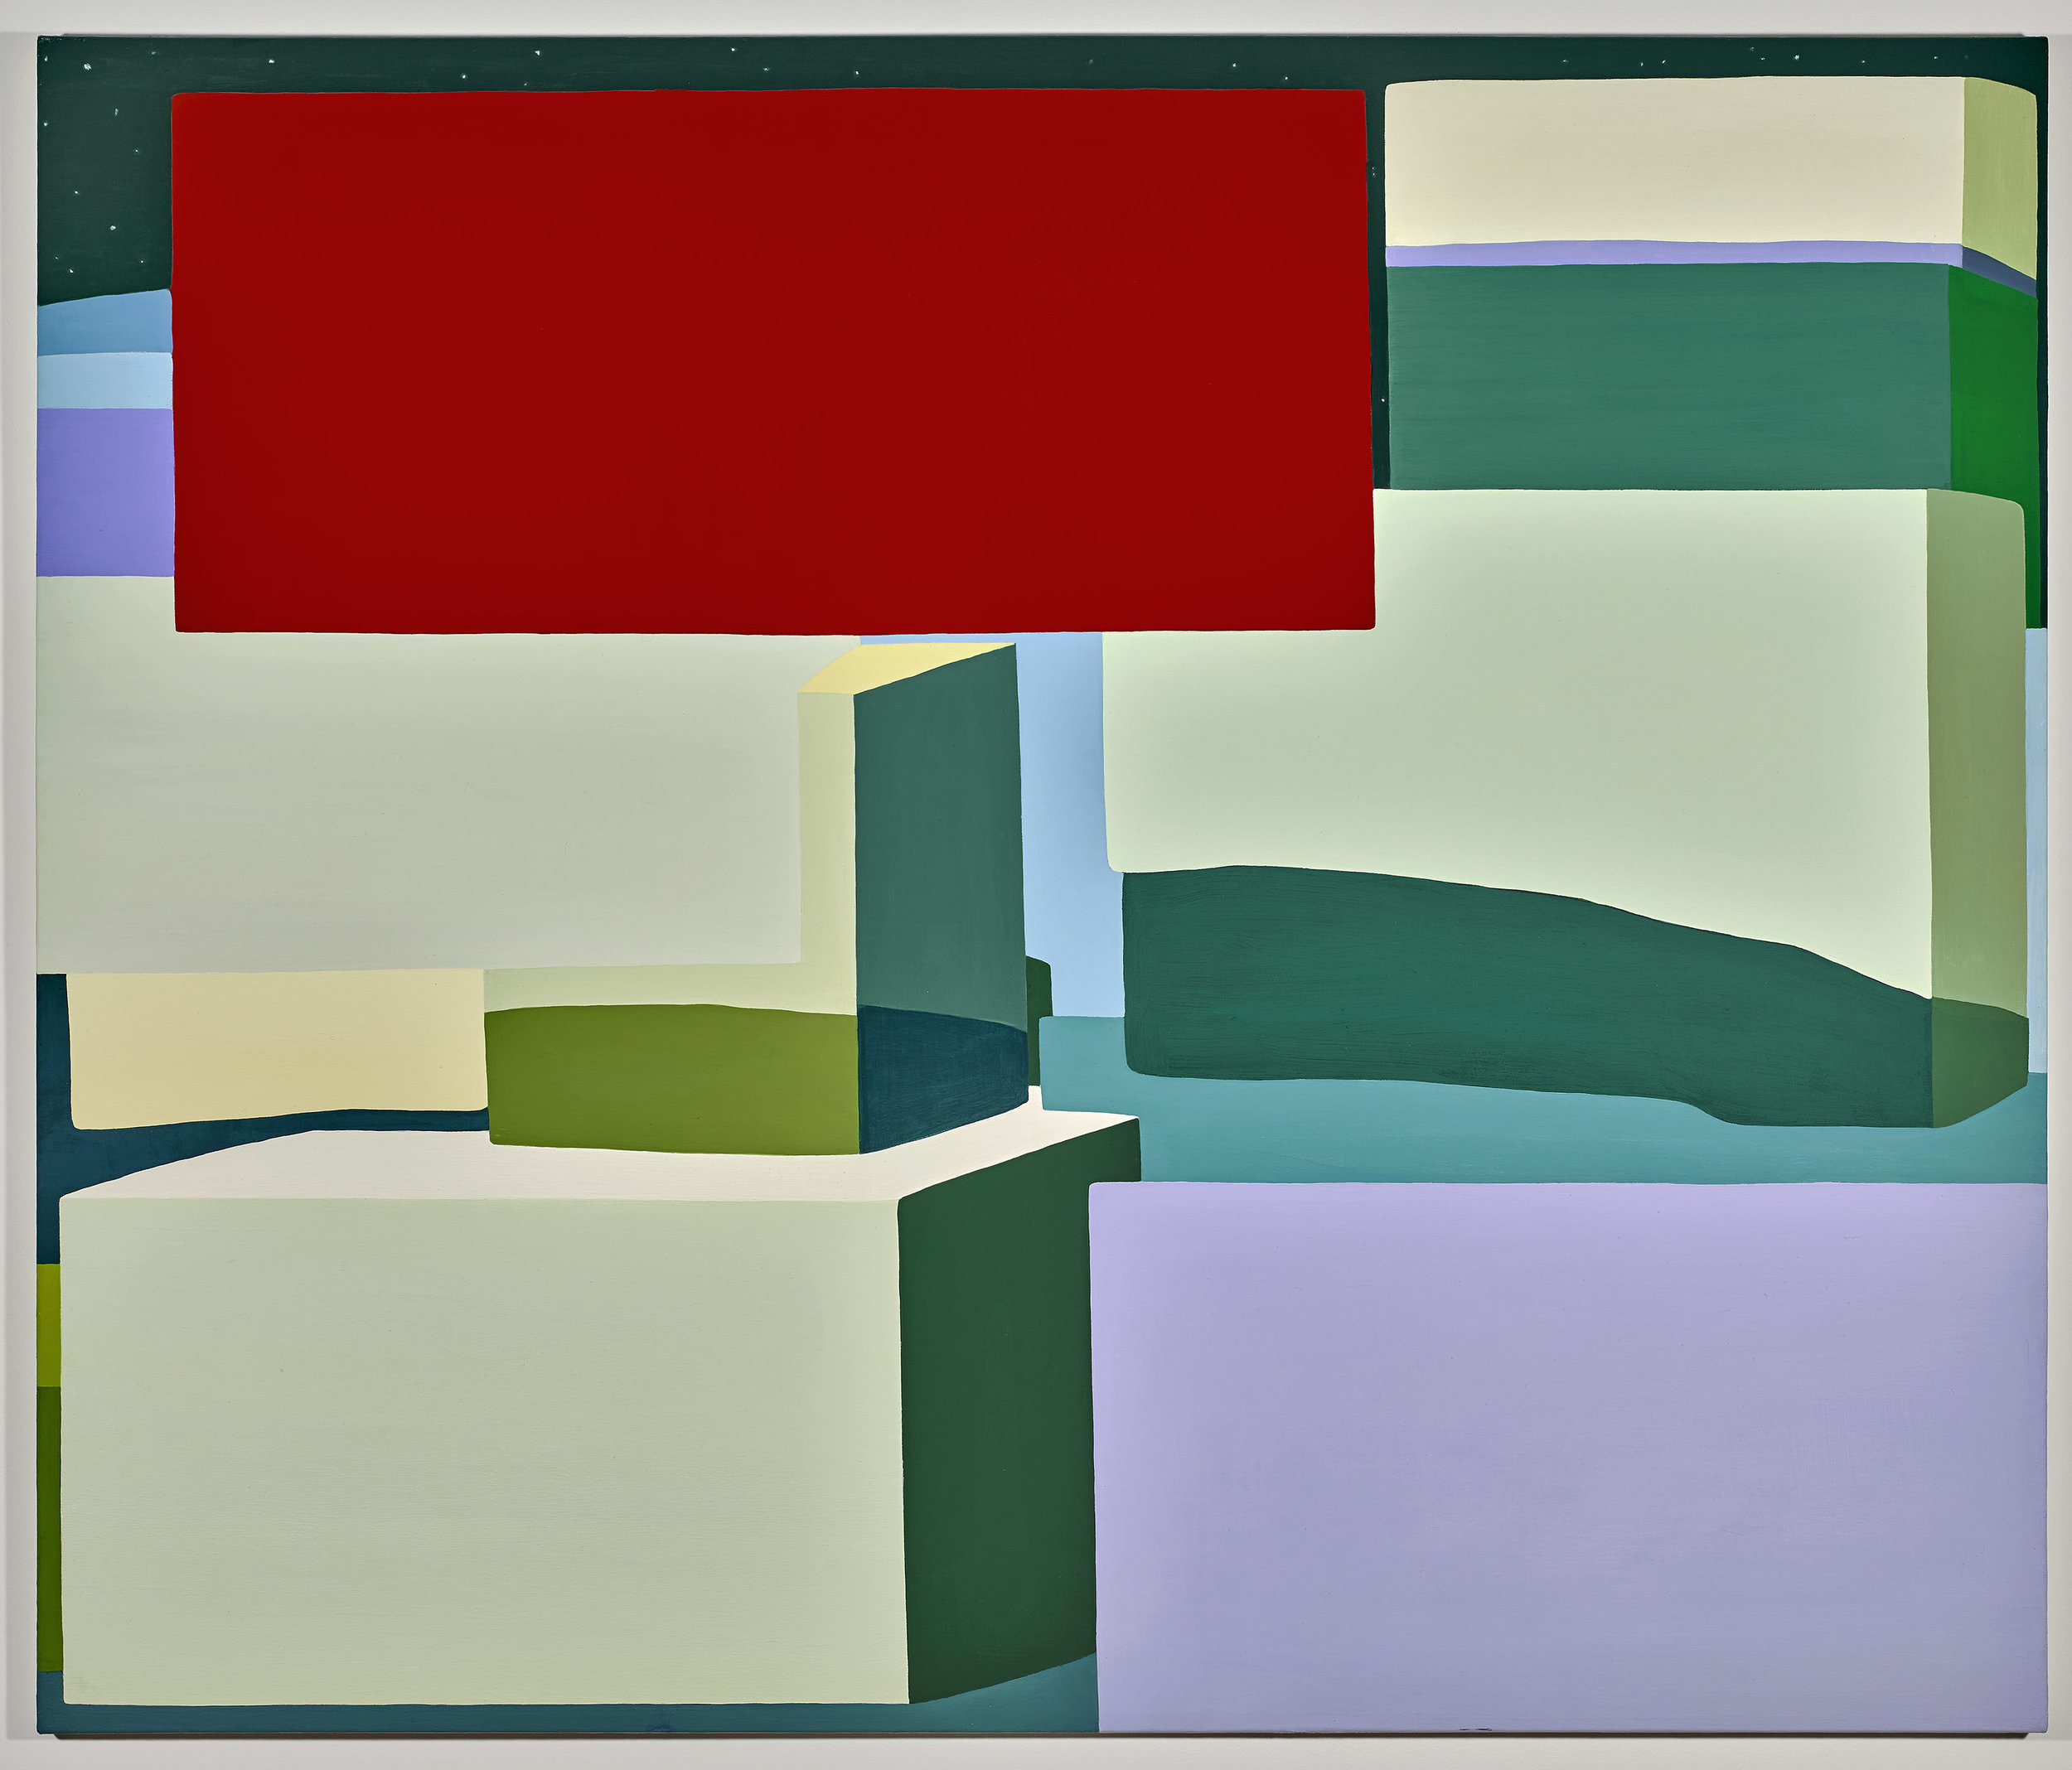 Louise Belcourt   HedgeLand Painting #19 , 2010 oil on canvas 57 x 67 inches; 144.8 x 170.2